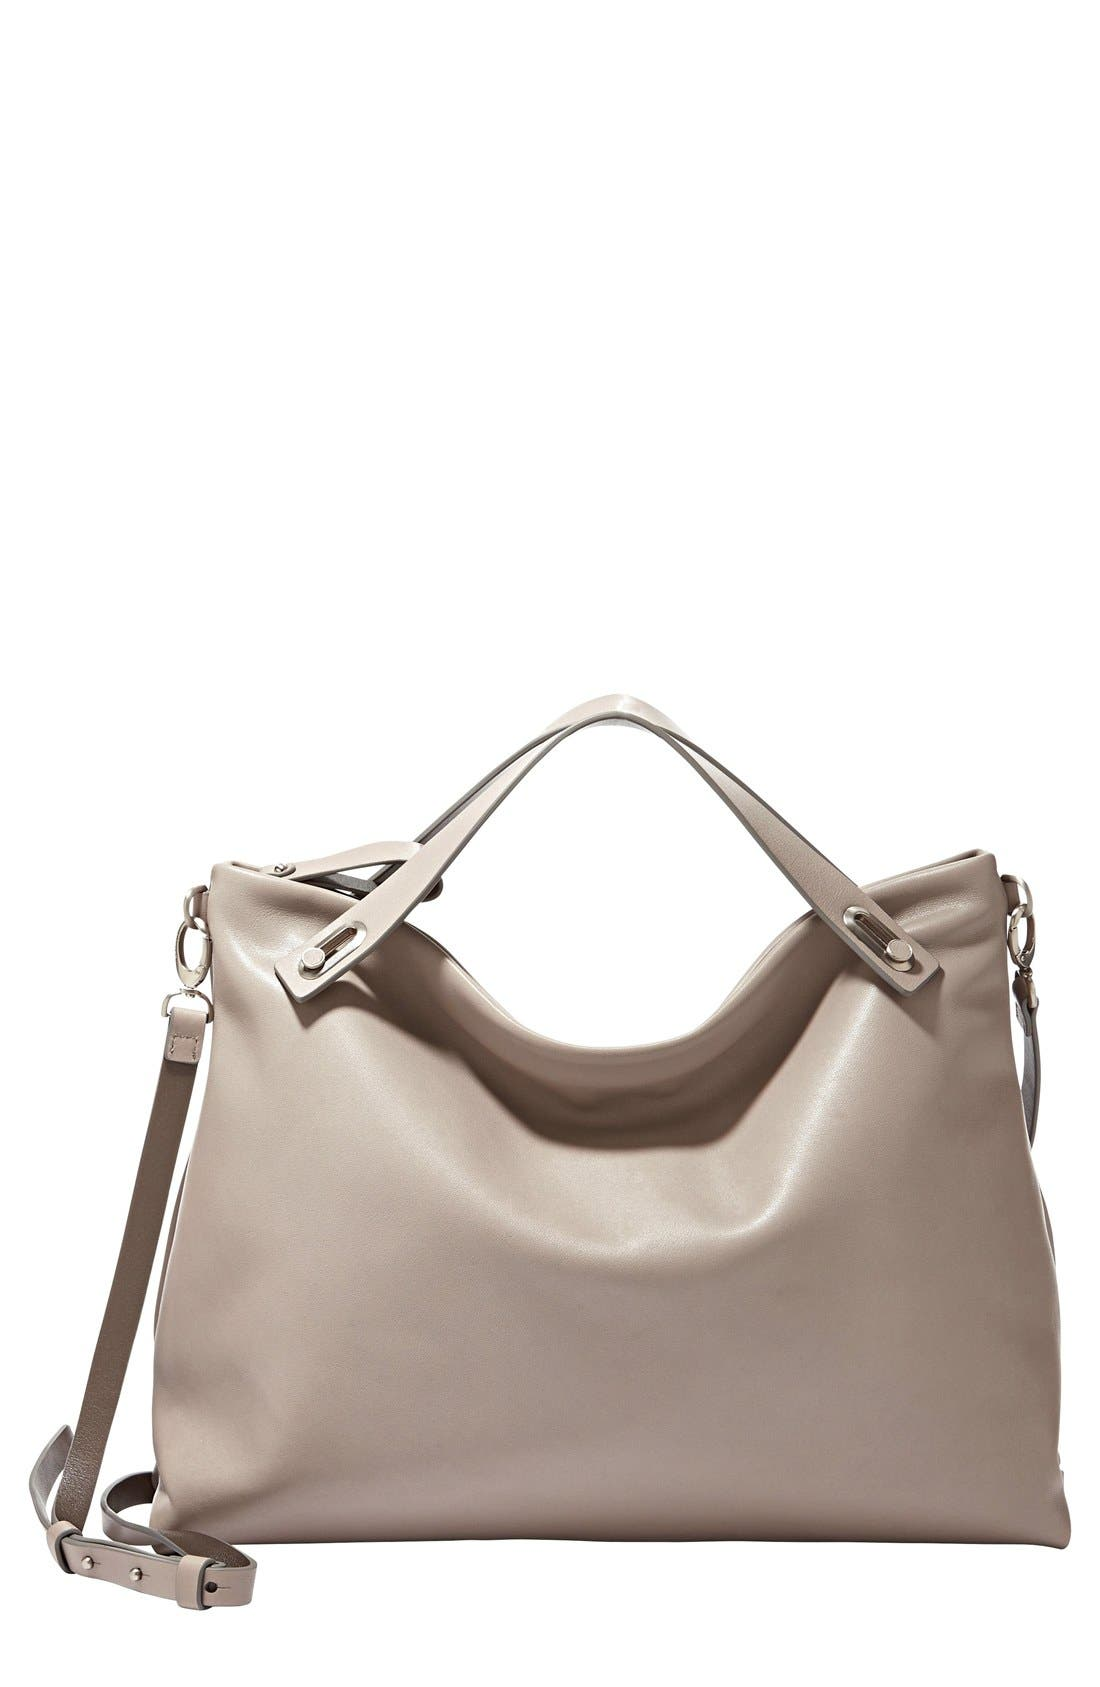 Main Image - Skagen 'Mikkeline' Leather Satchel